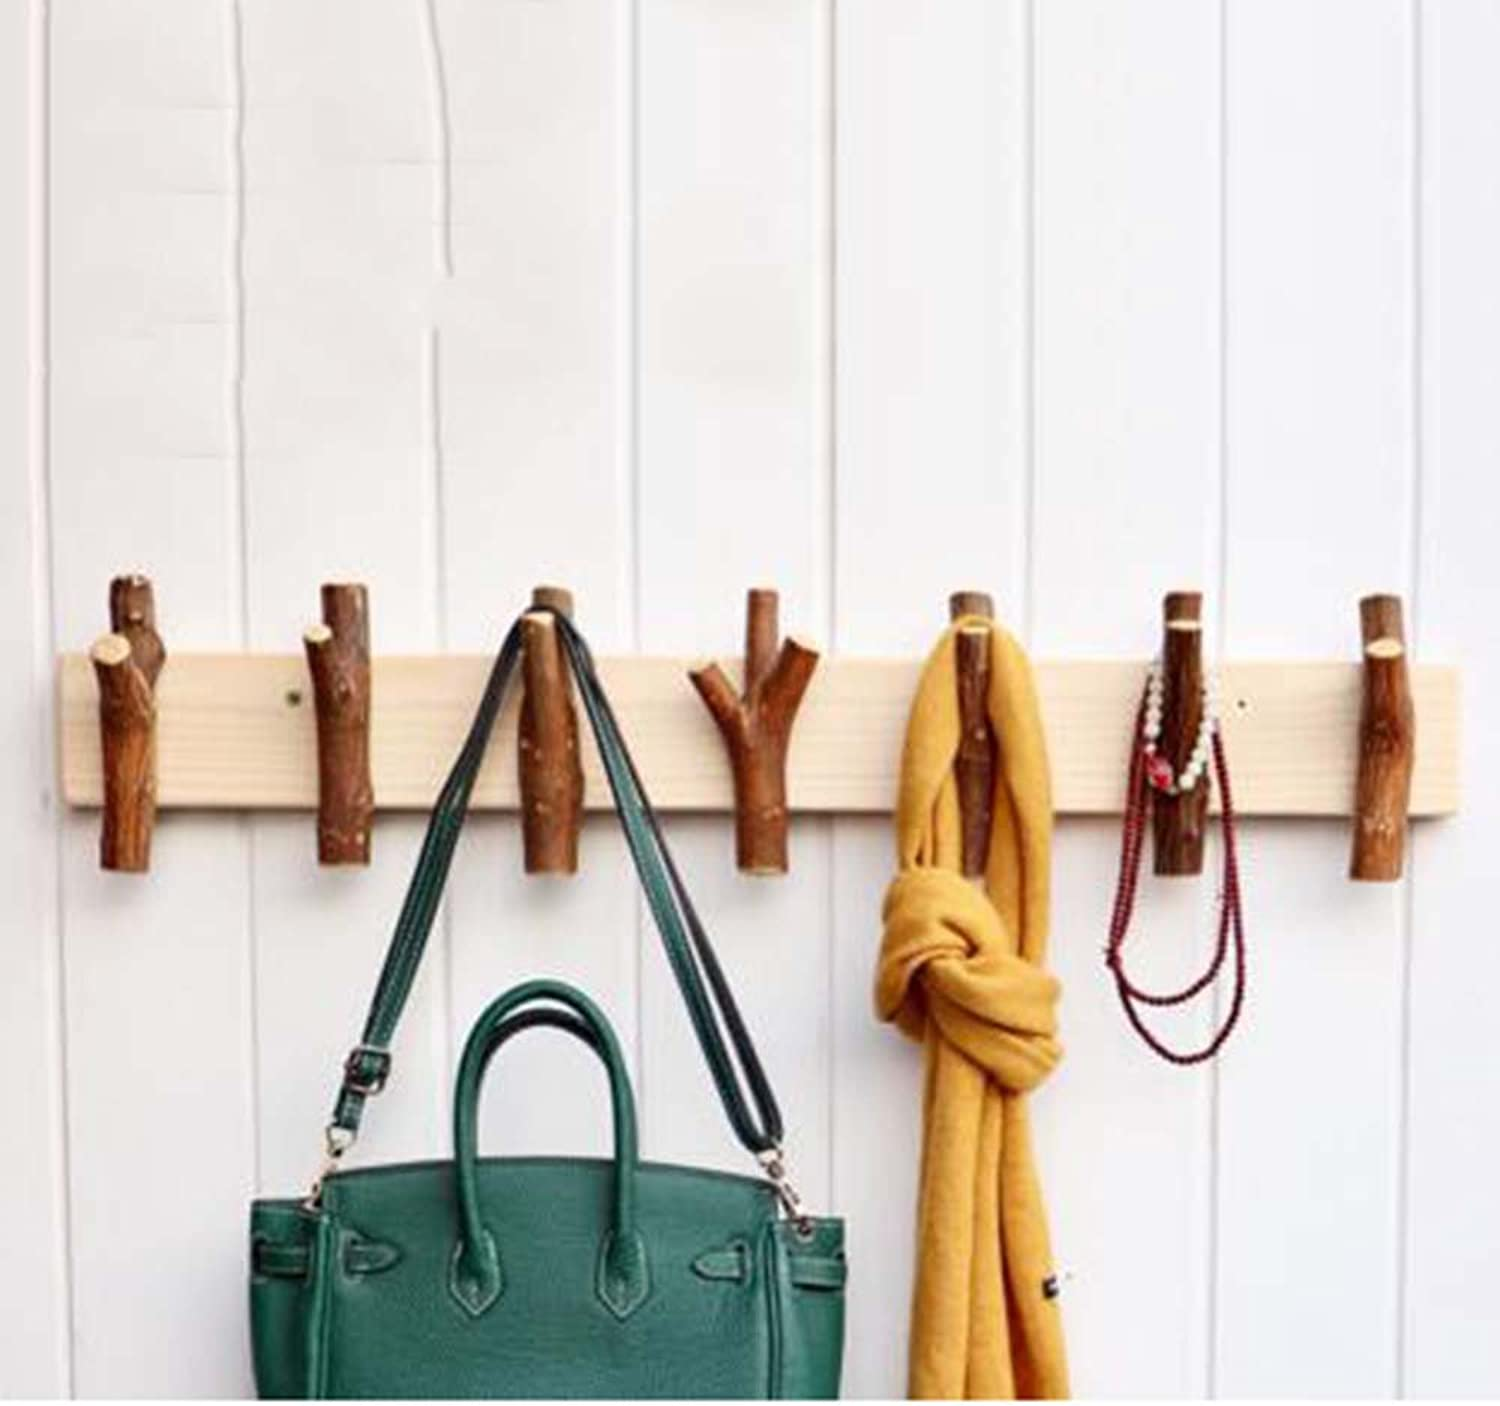 Xiaolin Wall Decoration Coat Racks and Umbrella Stands Raw Wood Tree Hanger Personality Retro Nordic Entrance Wall Hanging Hook